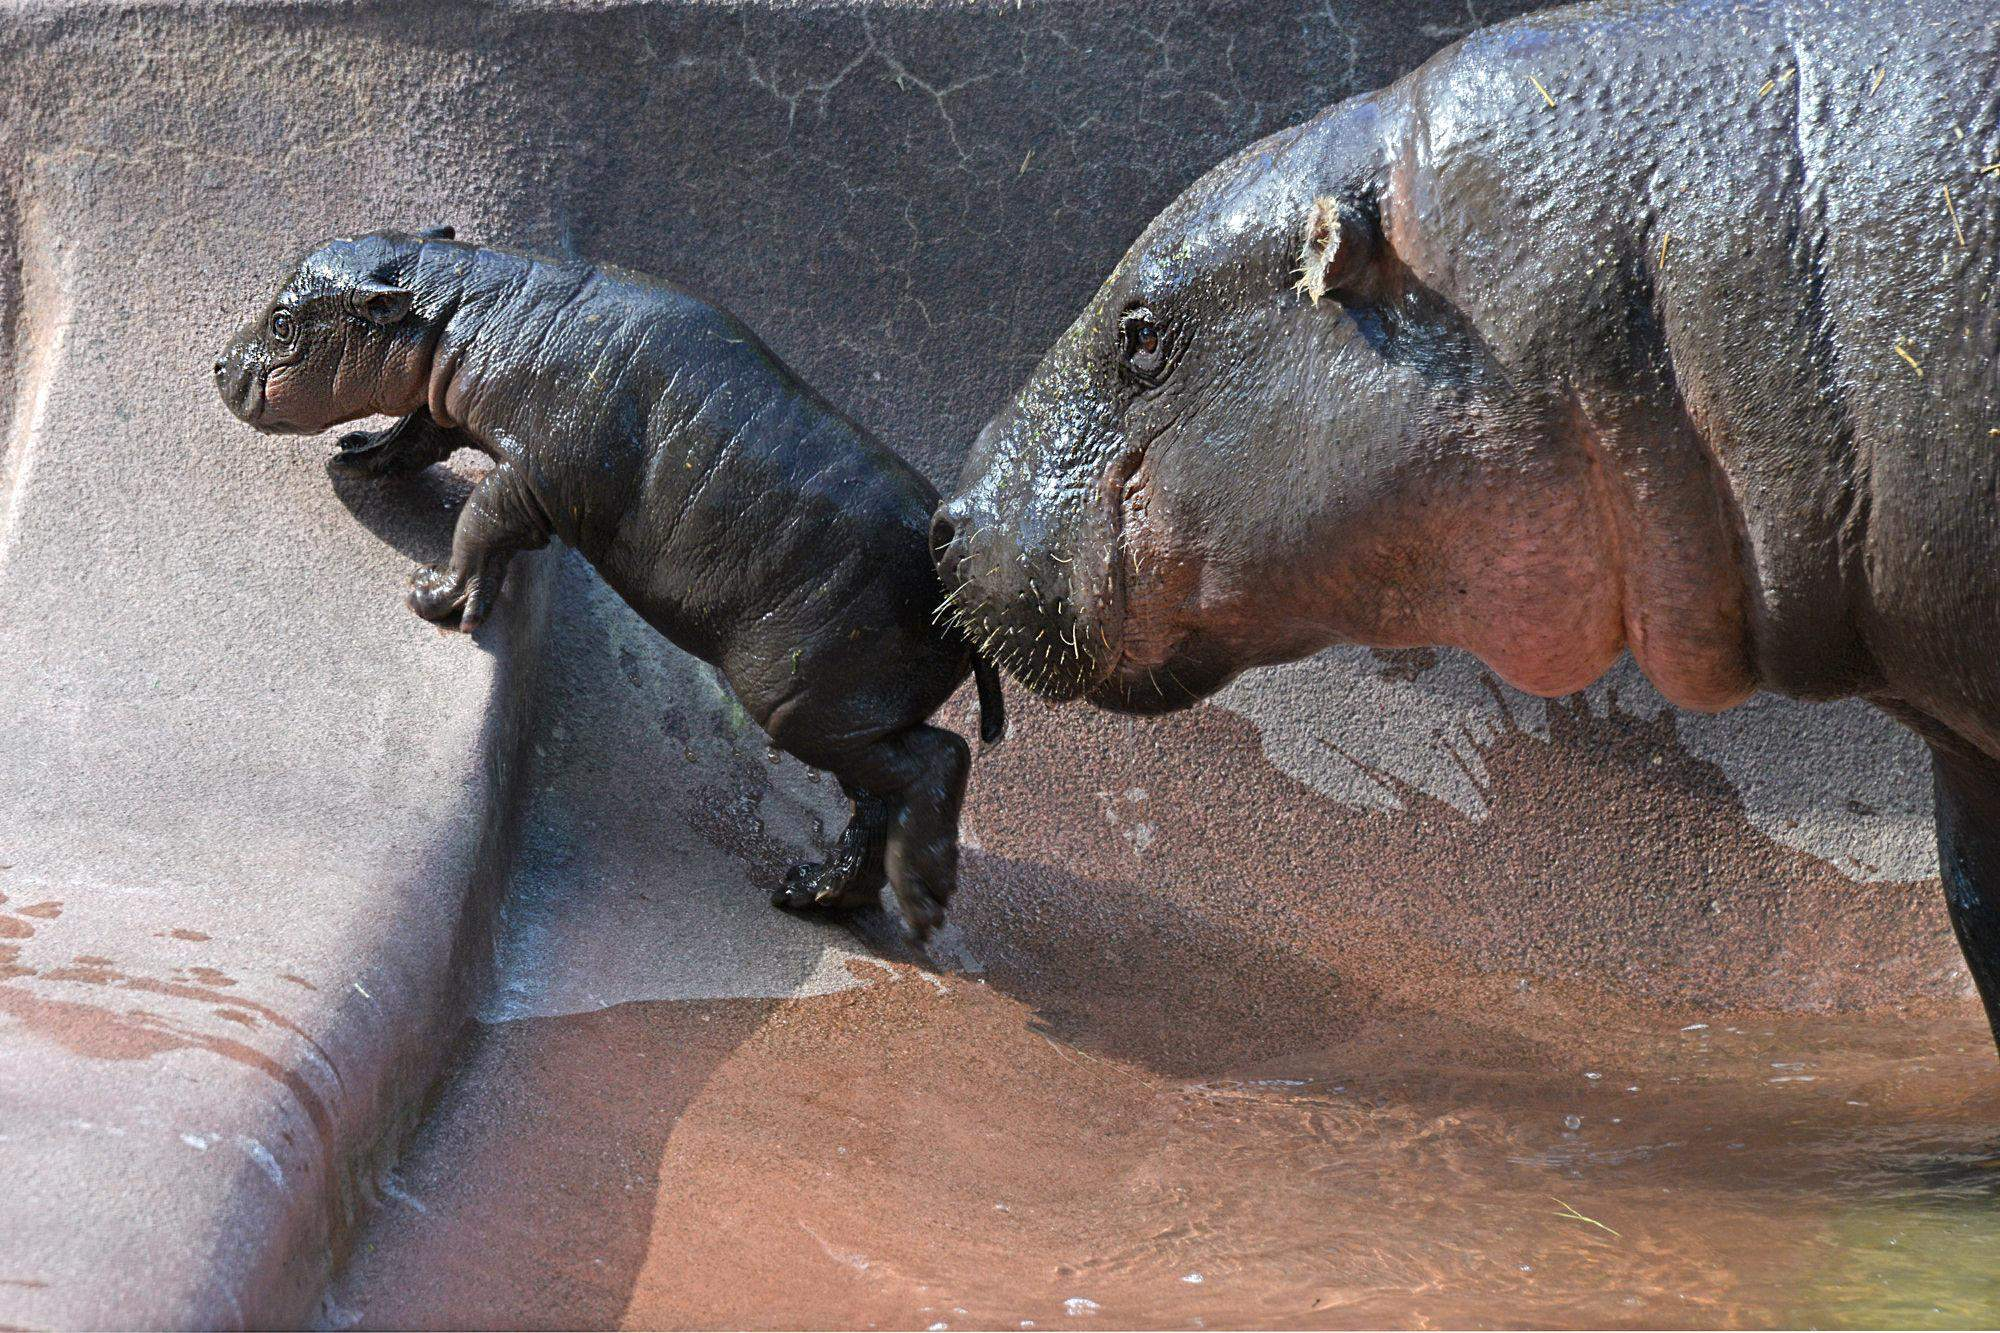 Pygmy hippopotamus Widescreen for desktop